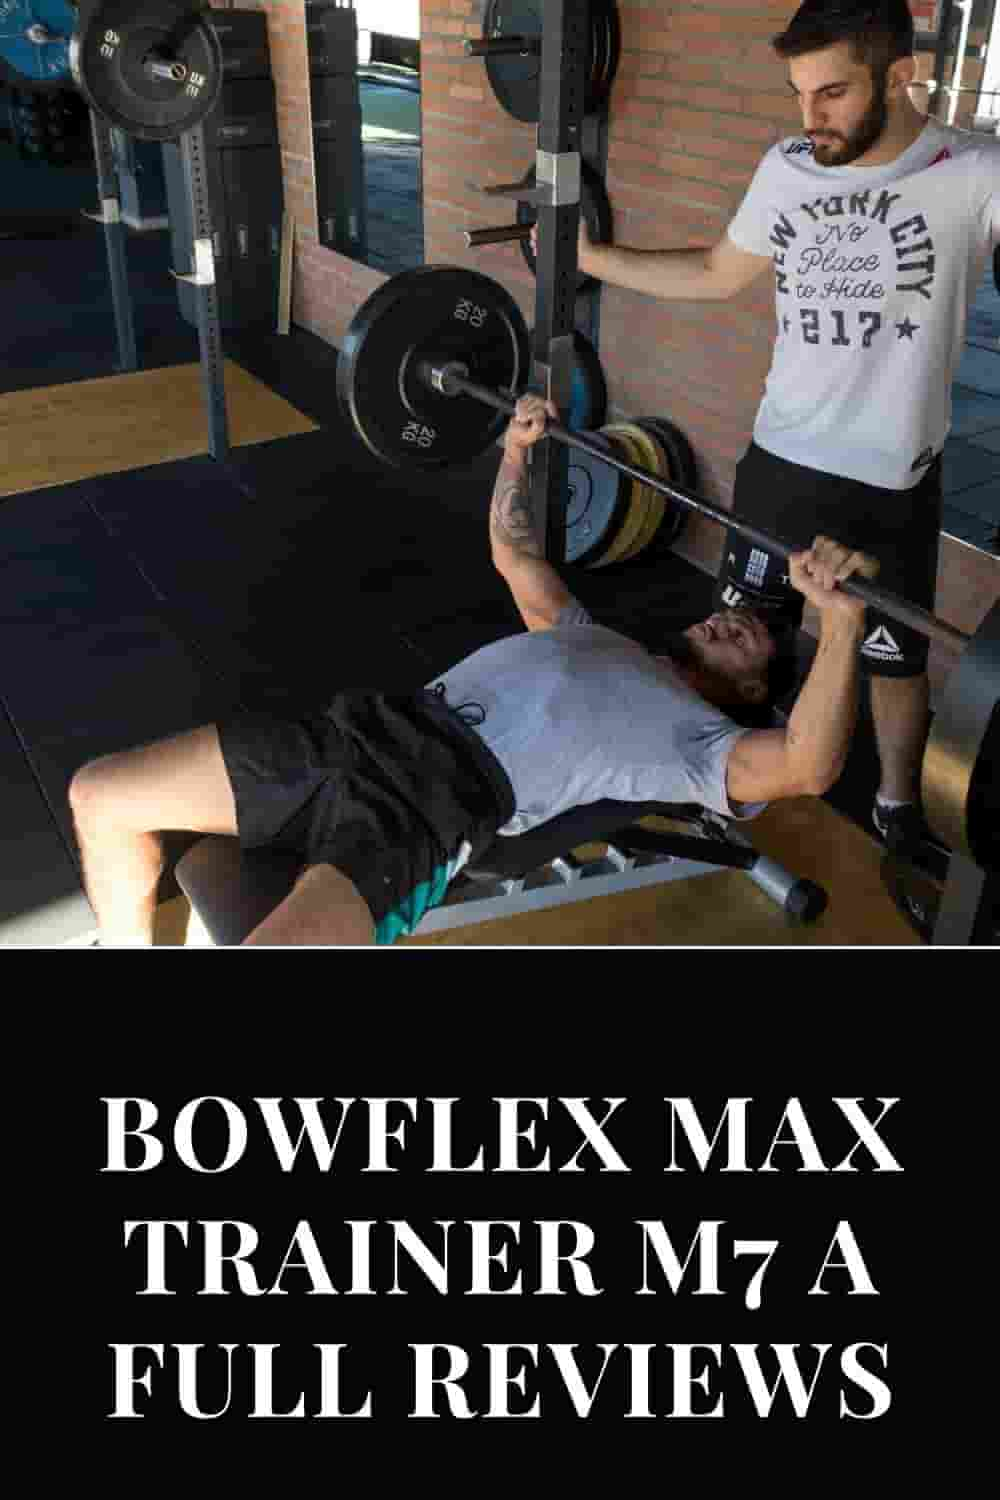 Bowflex Max Trainer M7 Review: Everything You Need To Know